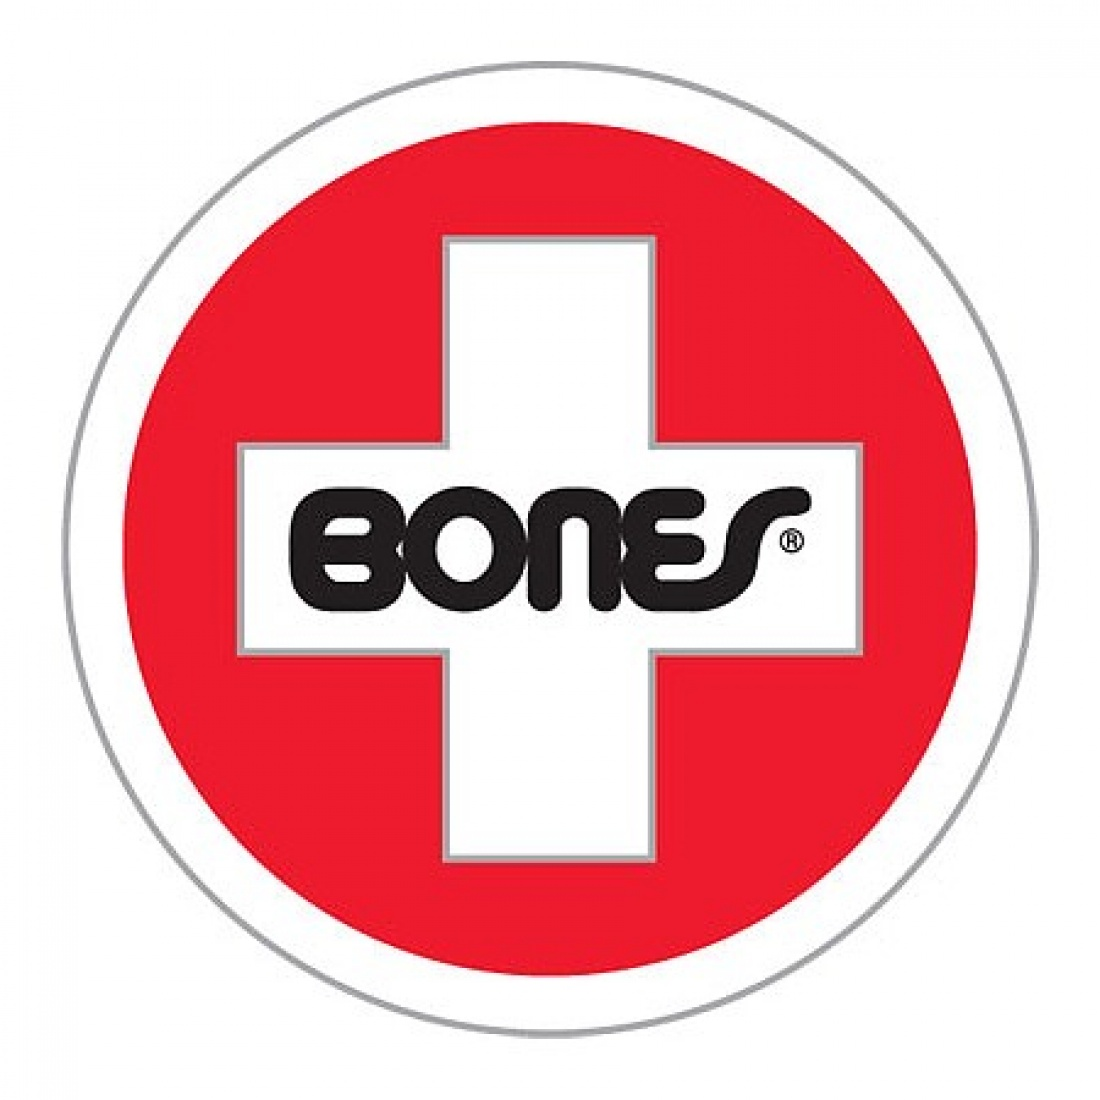 Bones Bearings Swiss Round Lg Sticker (1 Sticker)